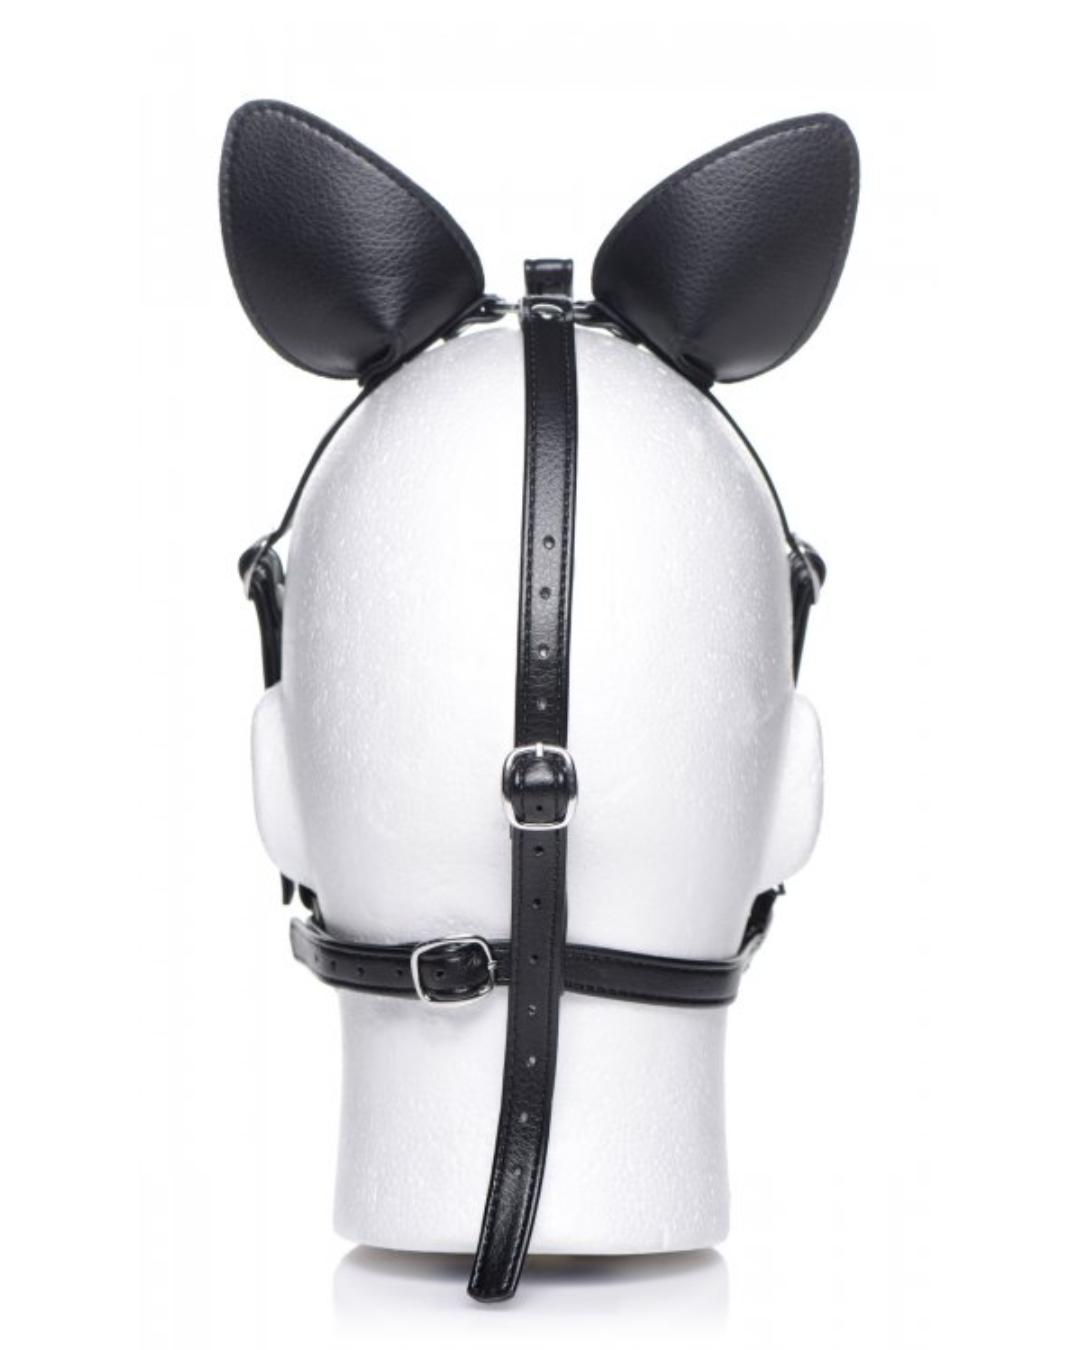 Dark Horse Pony Head Harness With Silicone Bit - Black on a mannequin, back view